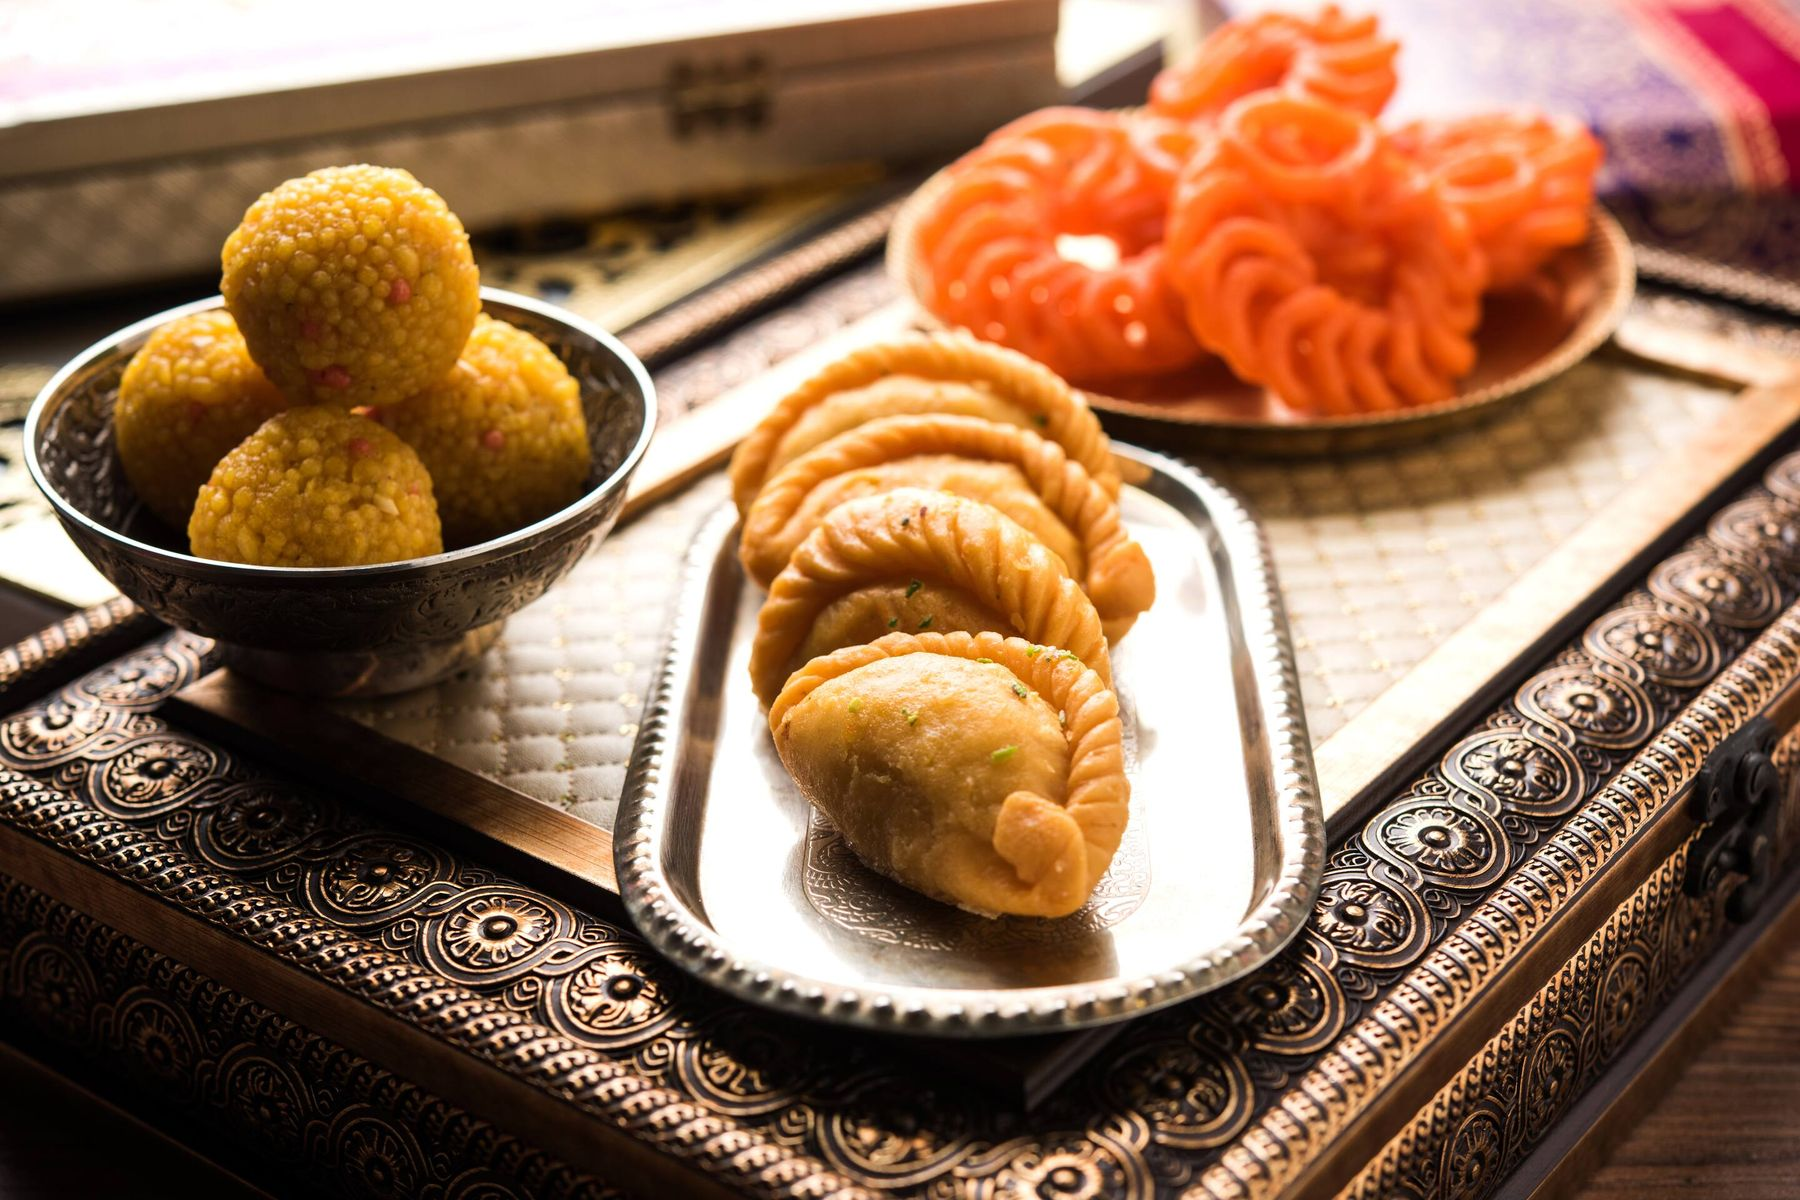 Has Making Diwali Snacks Left Your Kitchen a Mess? Try These Tips